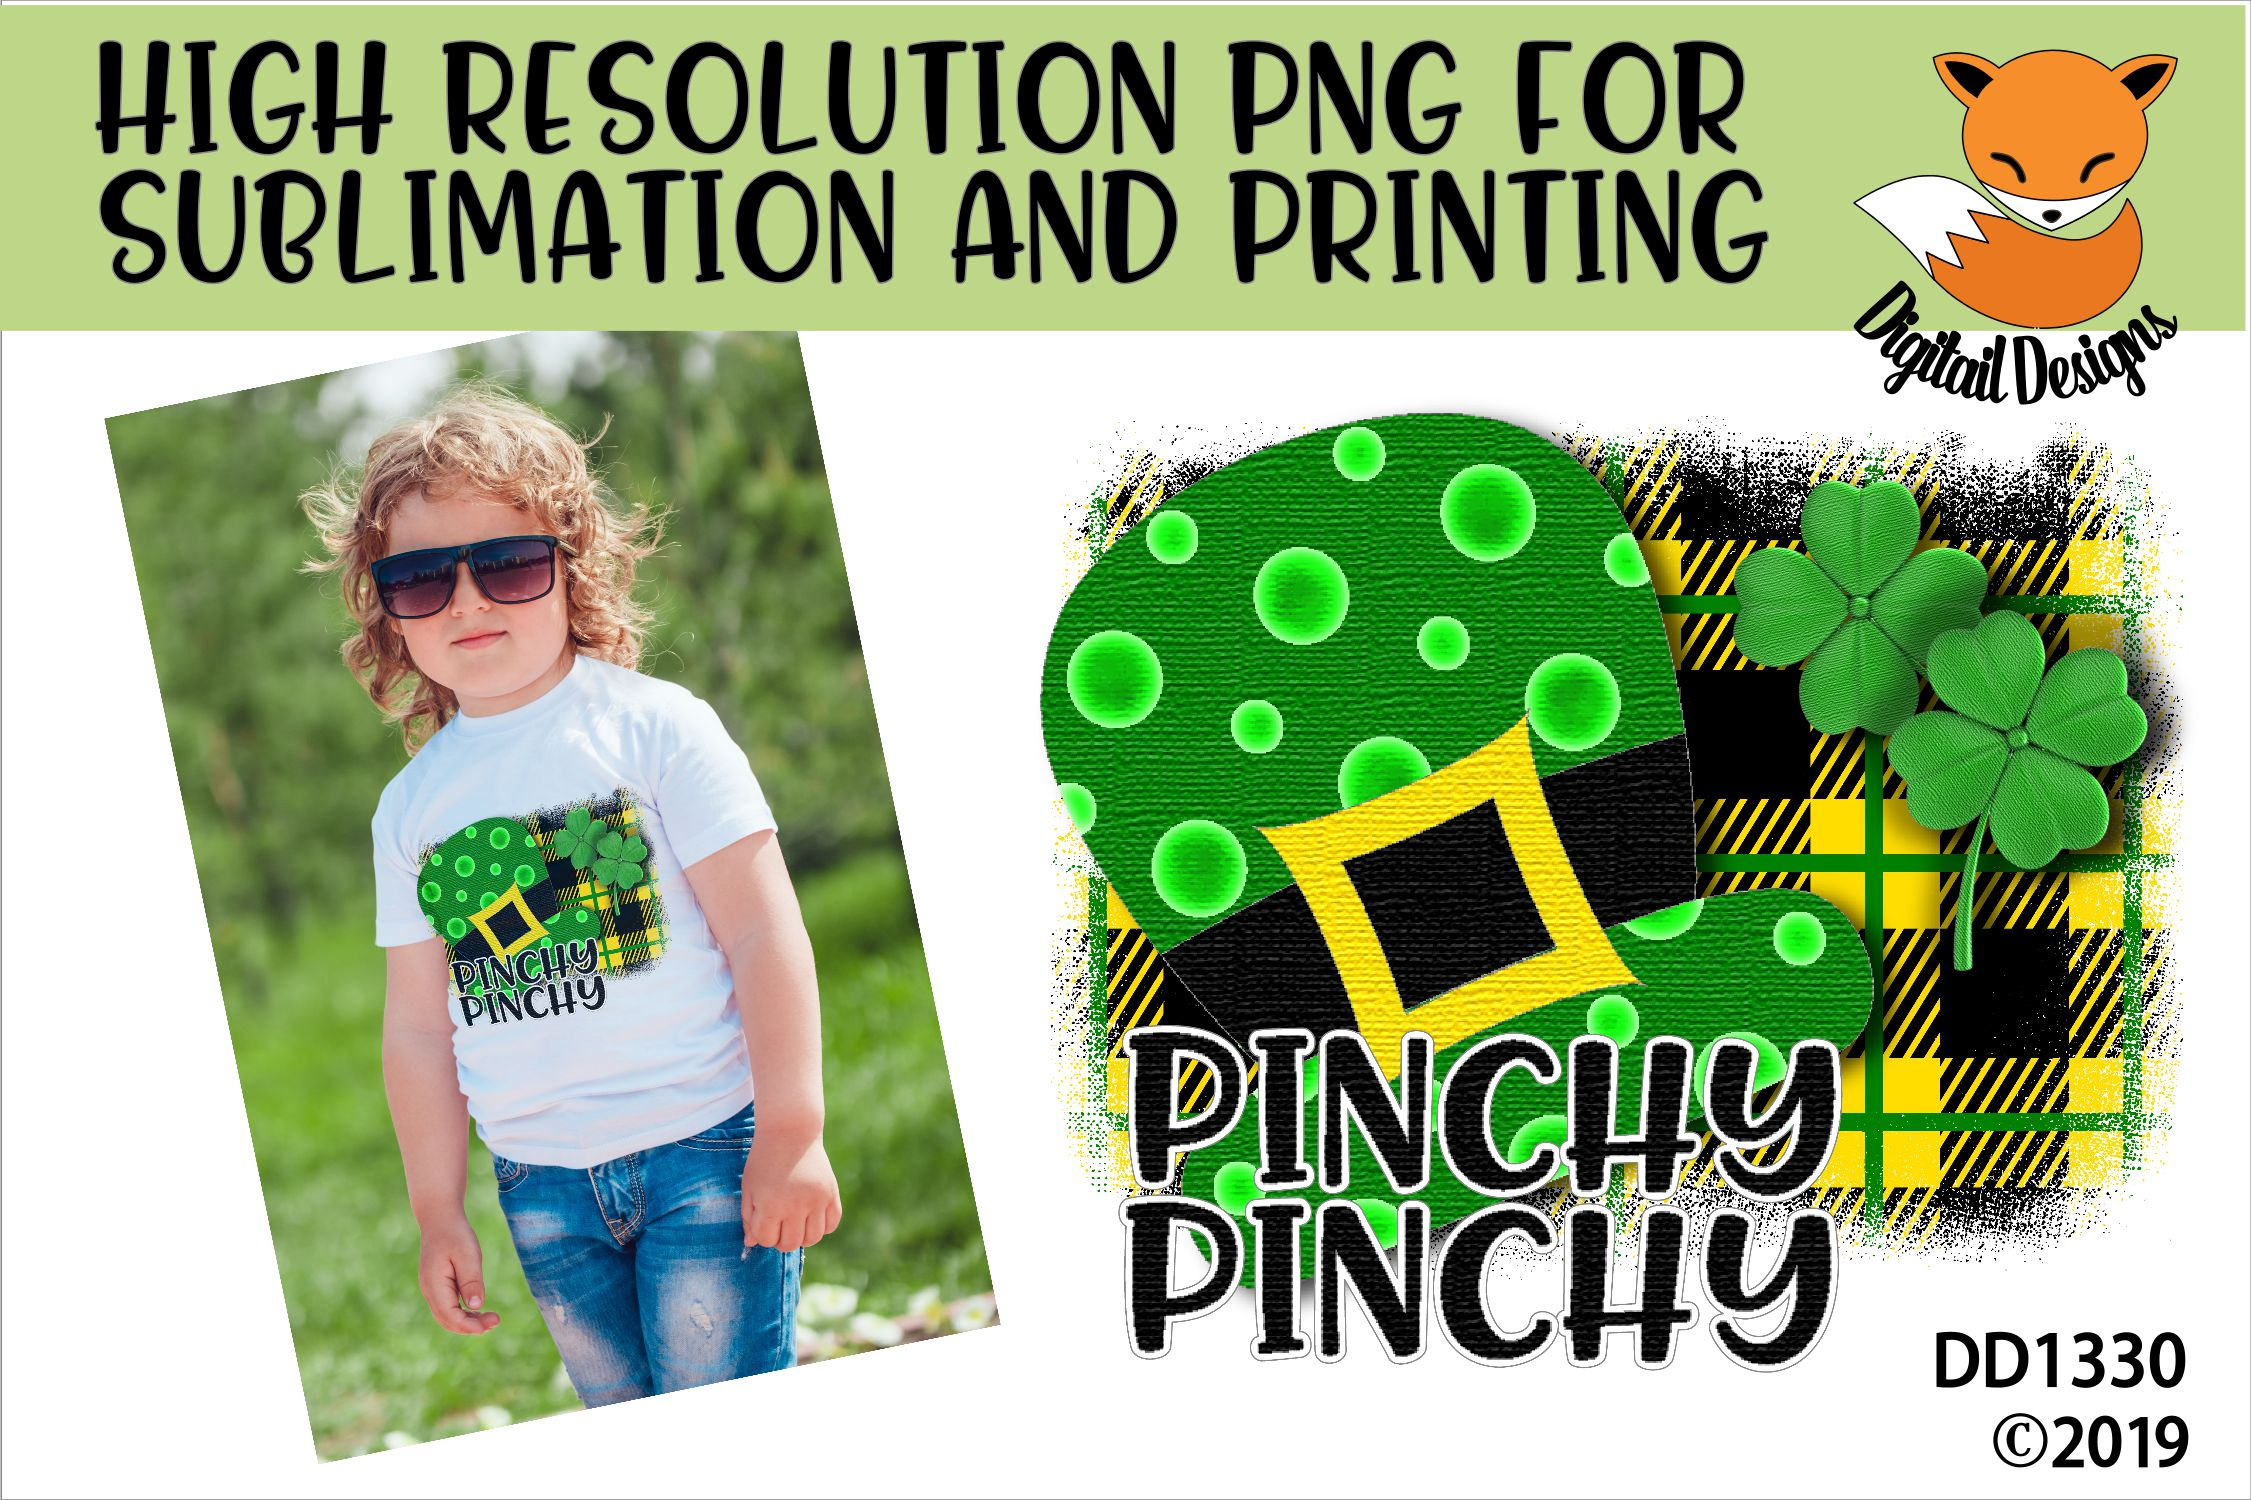 St Patrick's Day Irish Funny Pinchy Sublimation Printable example image 1